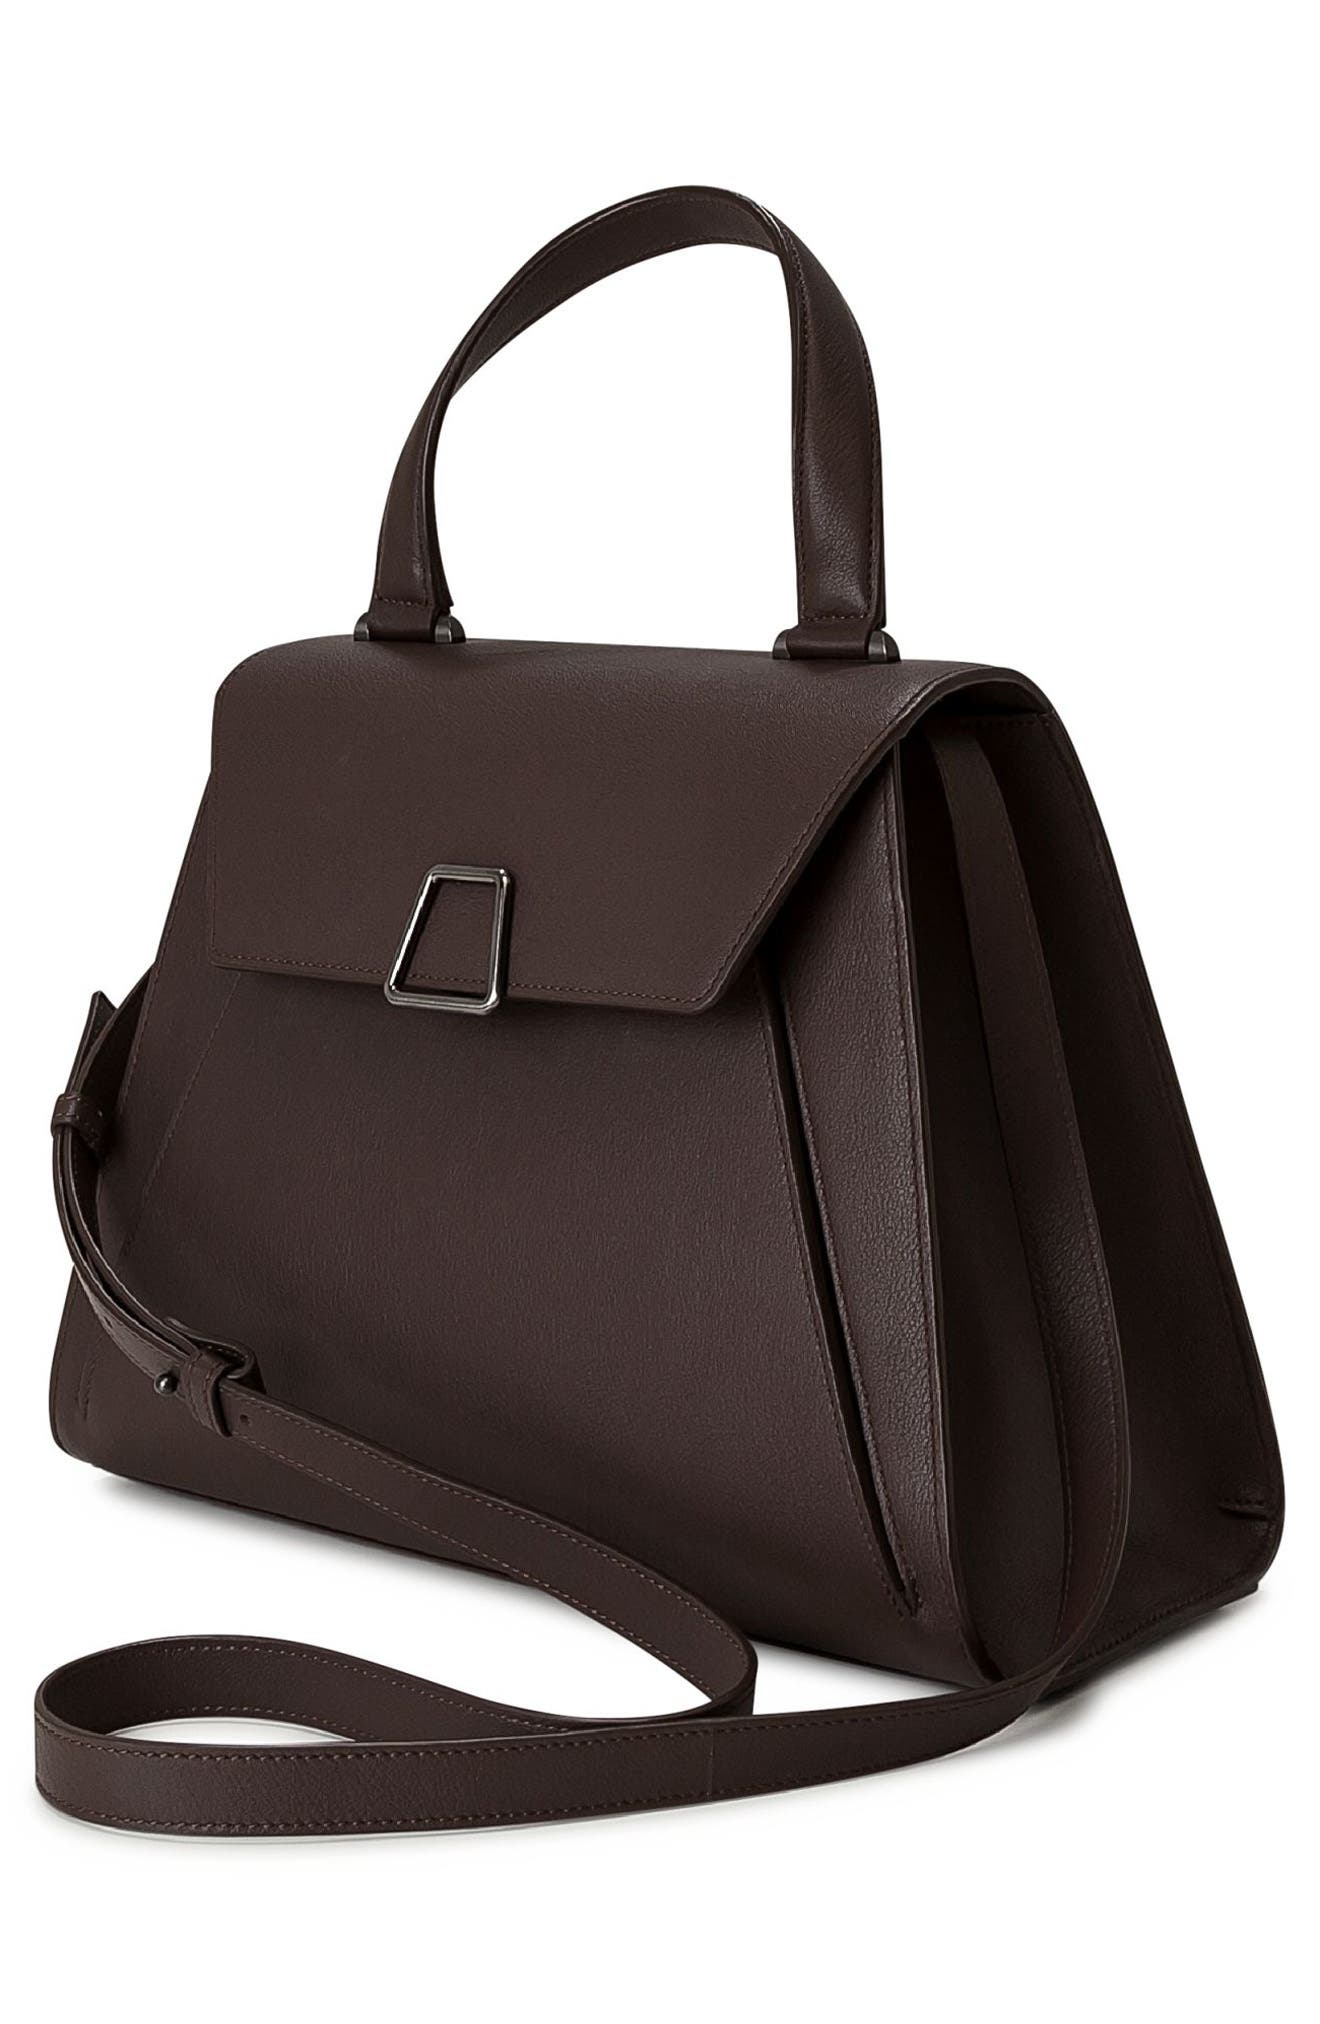 Alba Top Handle Leather Satchel,                             Alternate thumbnail 3, color,                             248